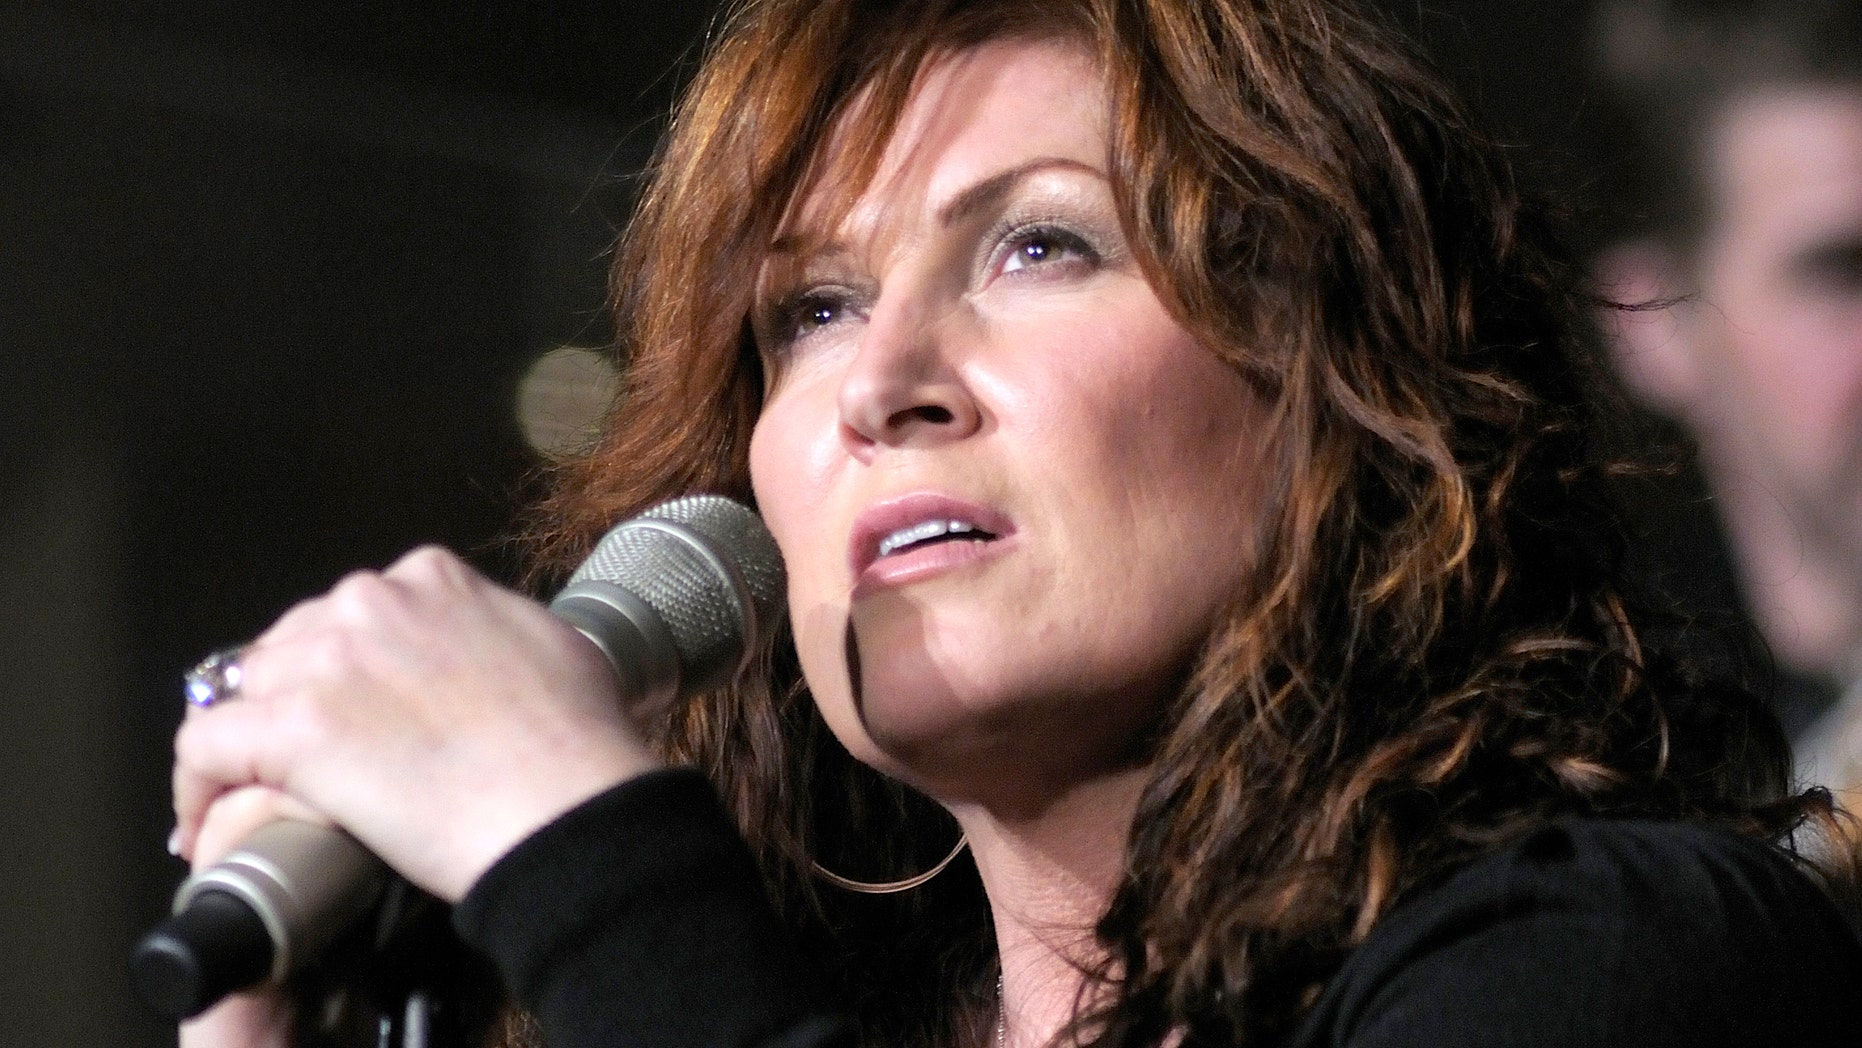 Jo Dee Messina performing during the 2nd annual Christmas Concert at Brentwood United Methodist Church in December 2010 in Brentwood, Tennessee.